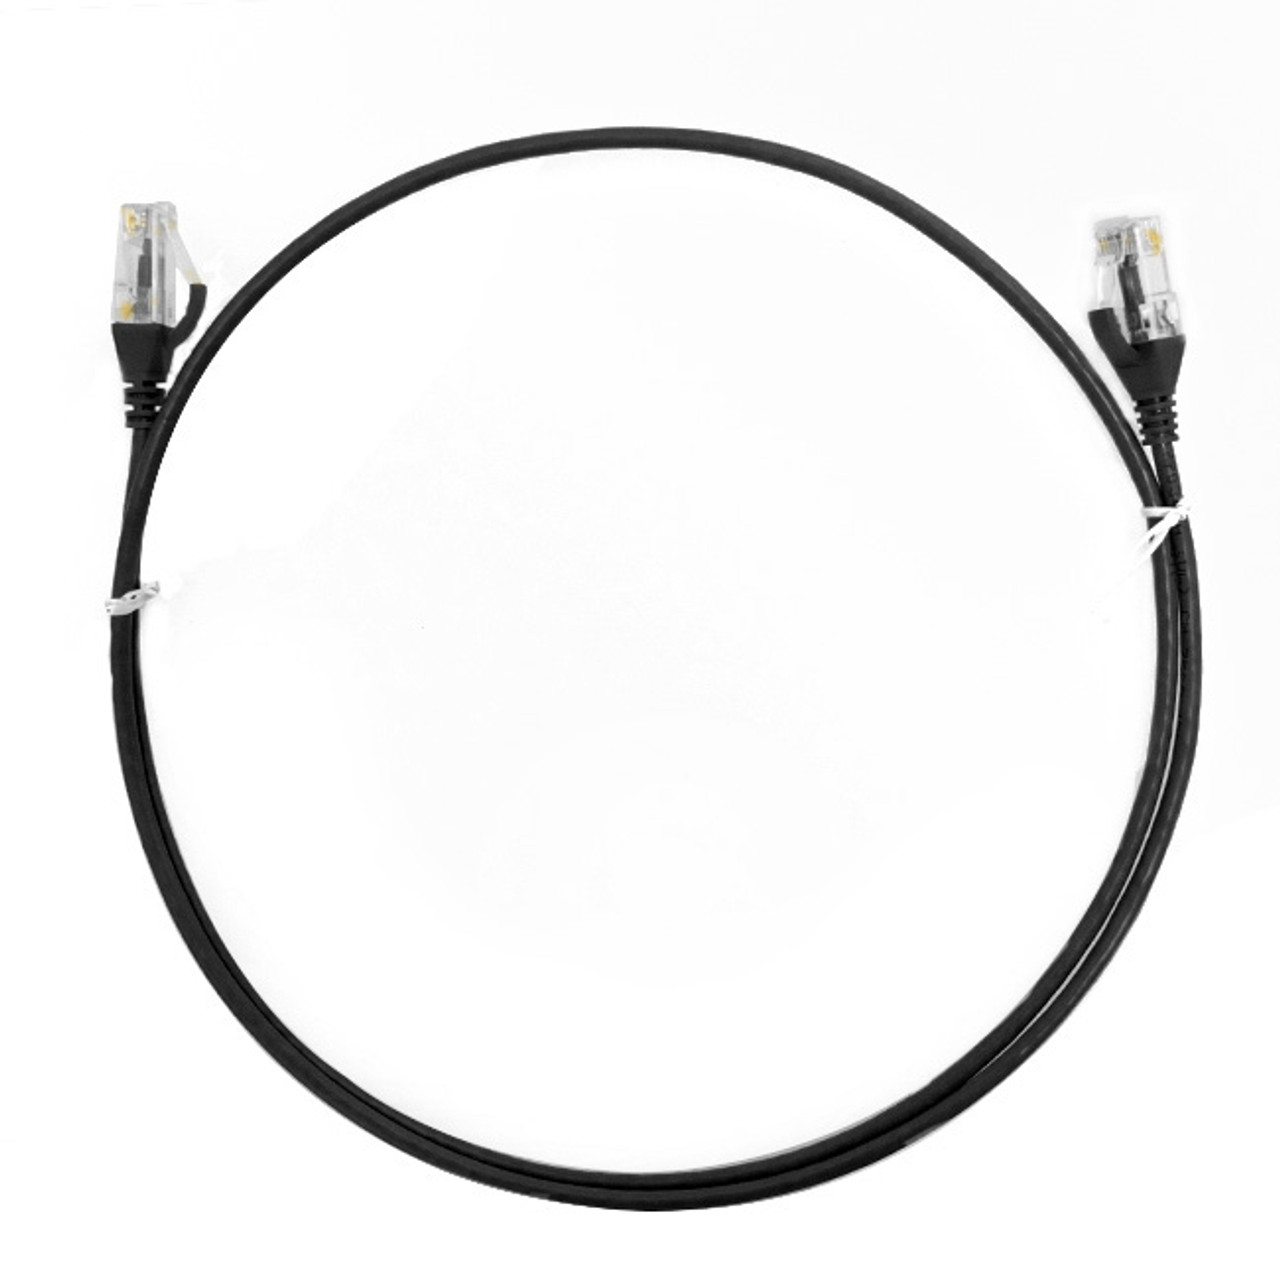 Image for 2.5m Cat 6 RJ45 RJ45 Ultra Thin LSZH Network Cables  : Black CX Computer Superstore